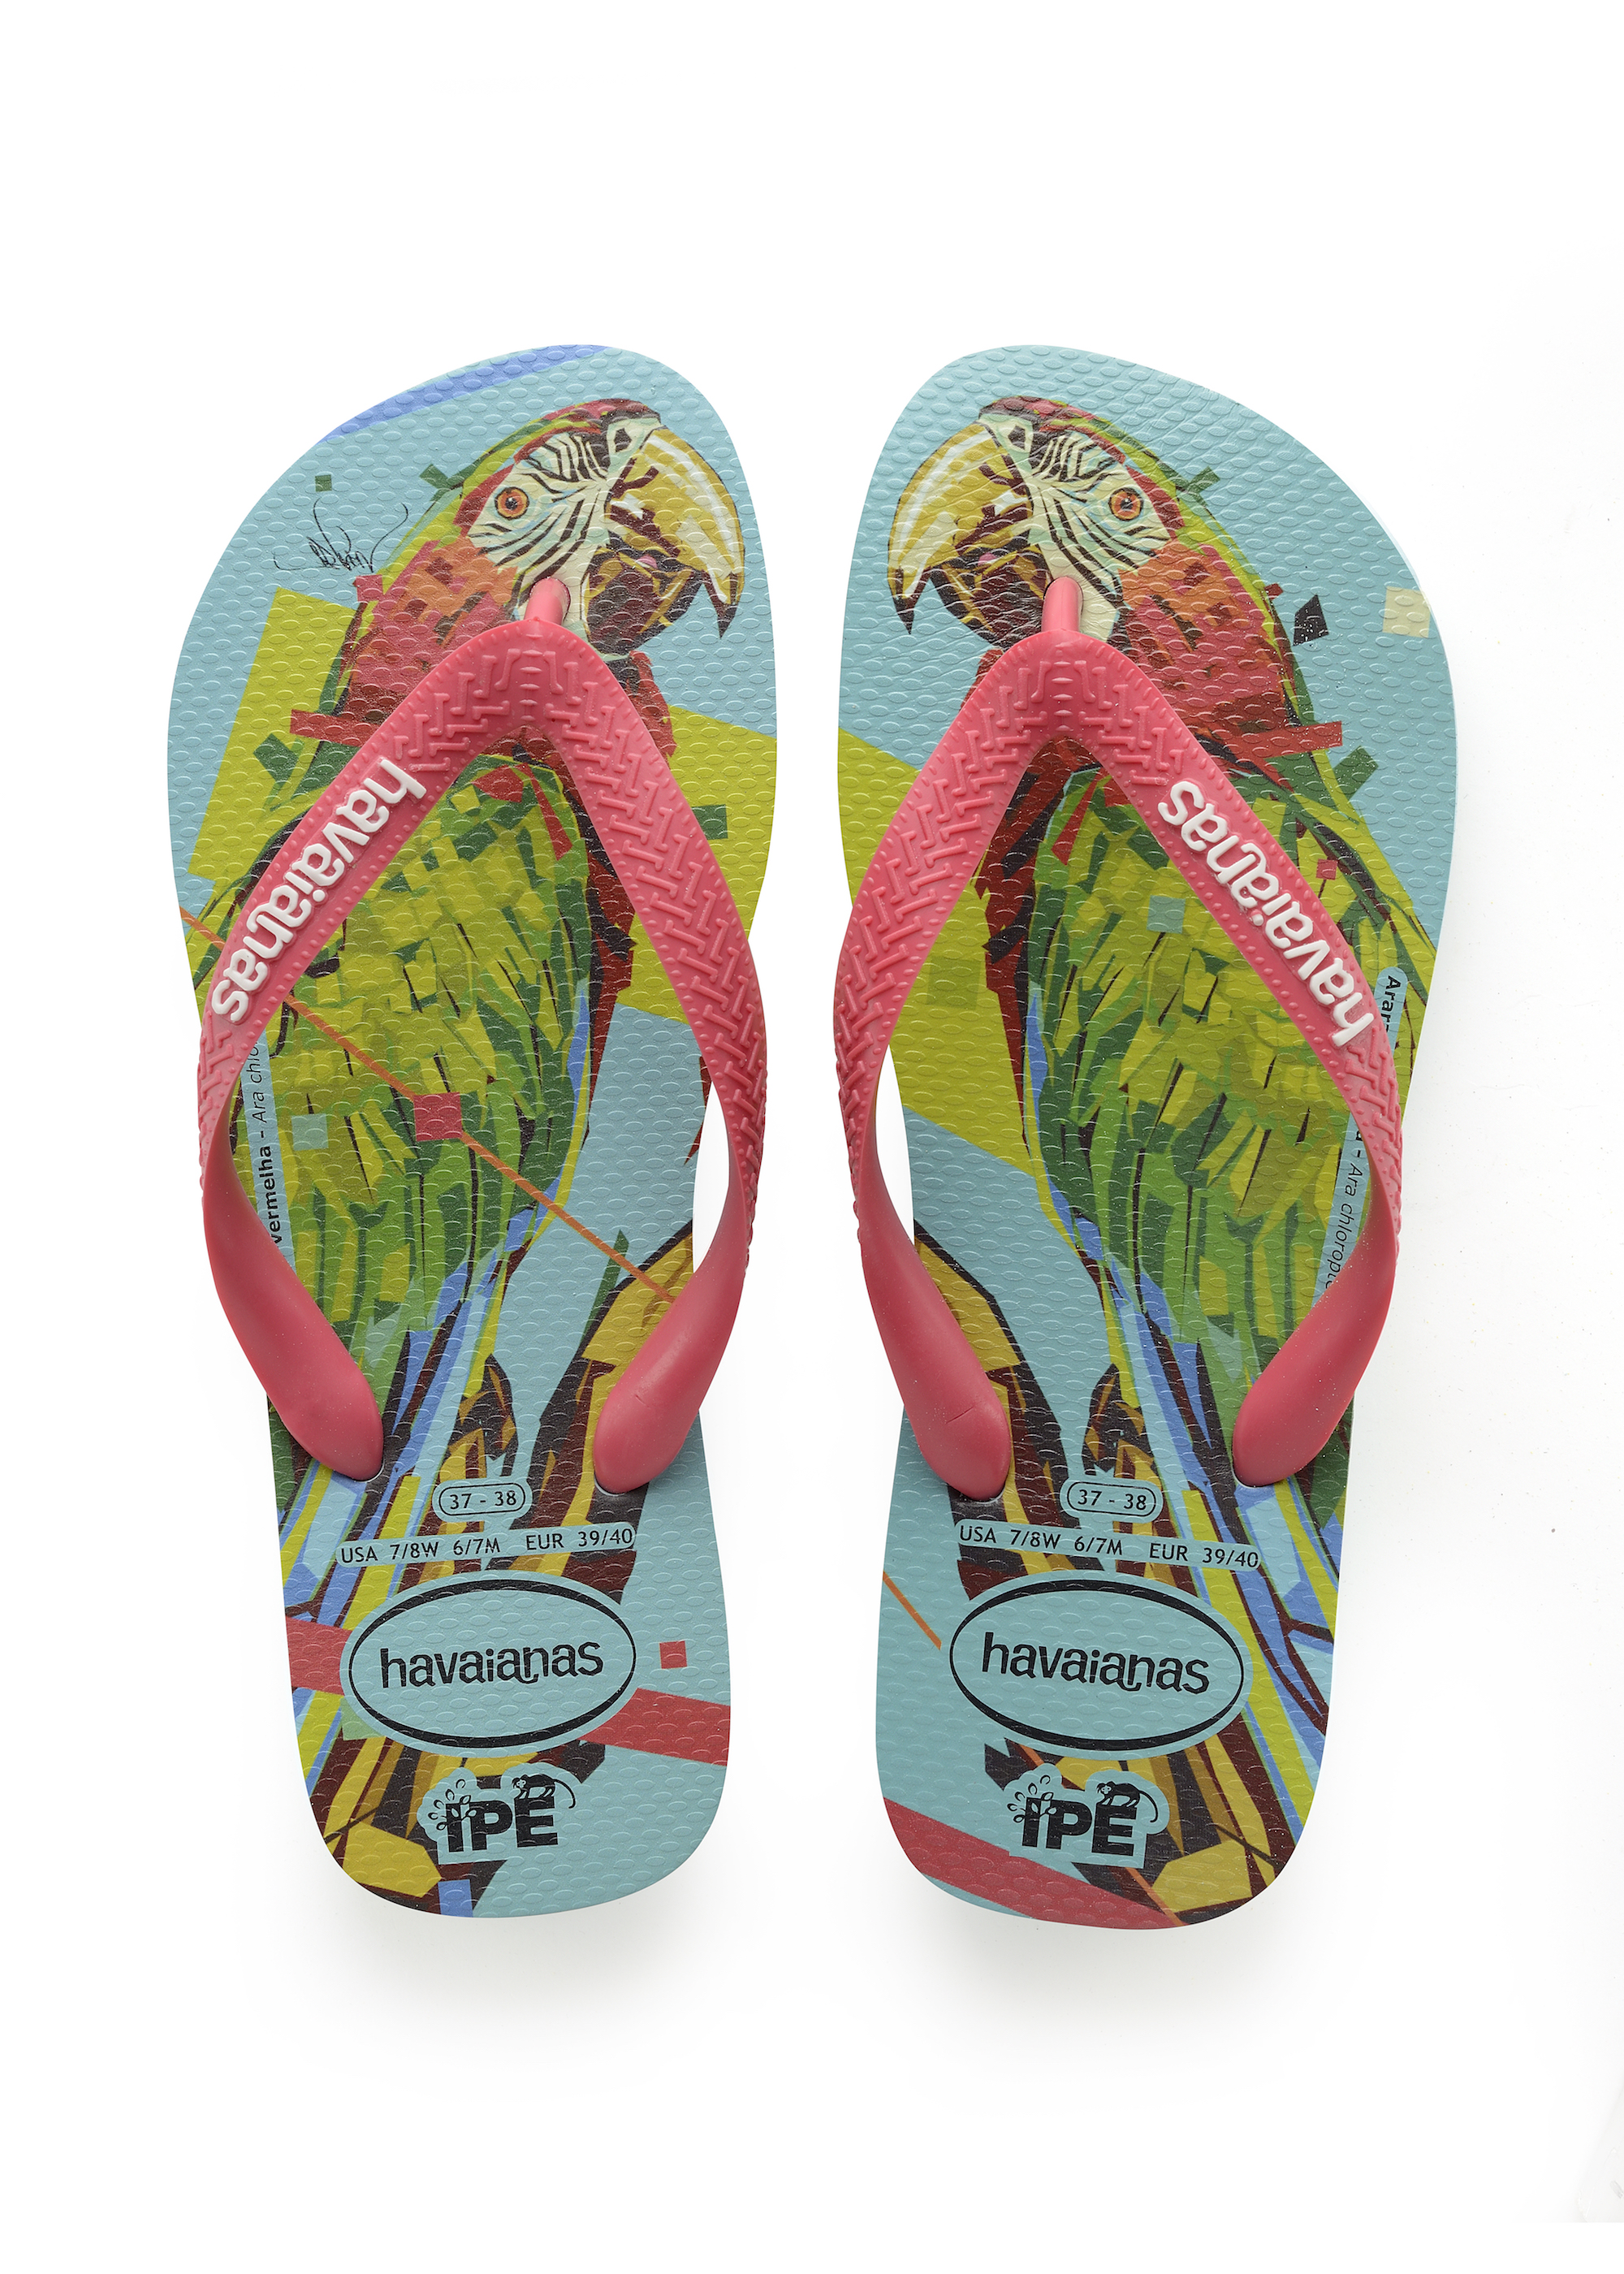 Havaianas x Arlin Graff collaboration parrot